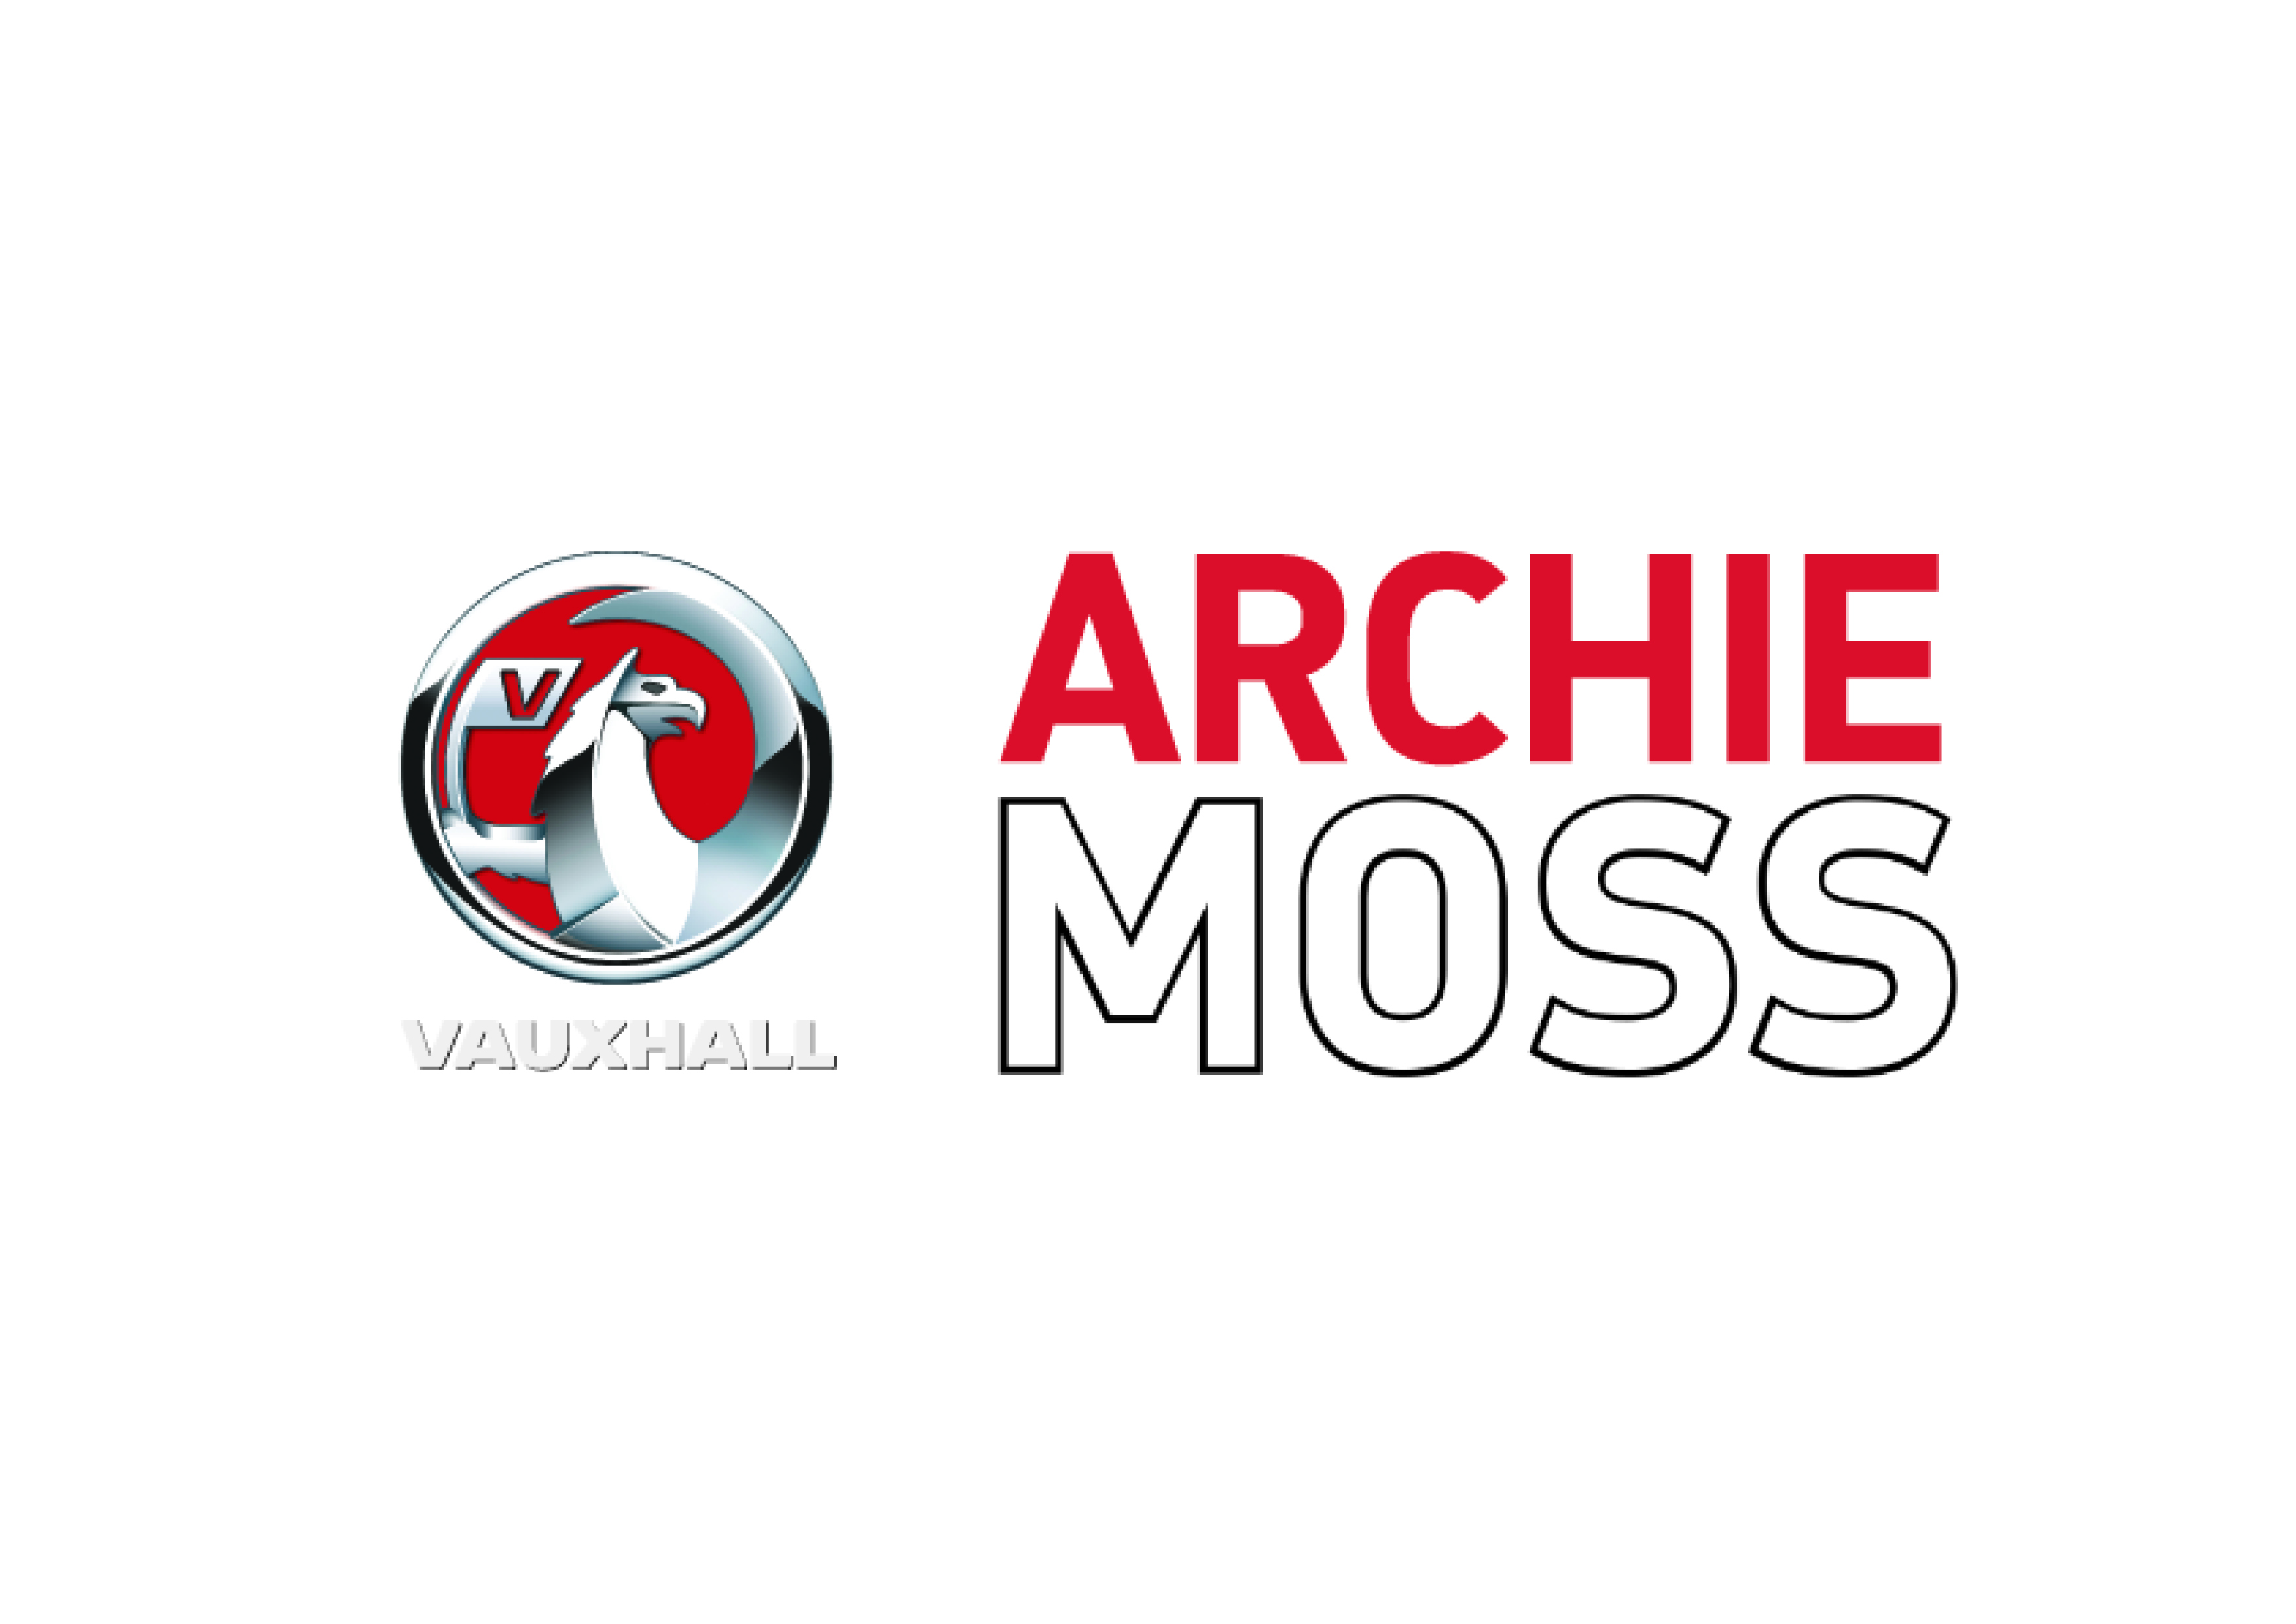 Archie Moss